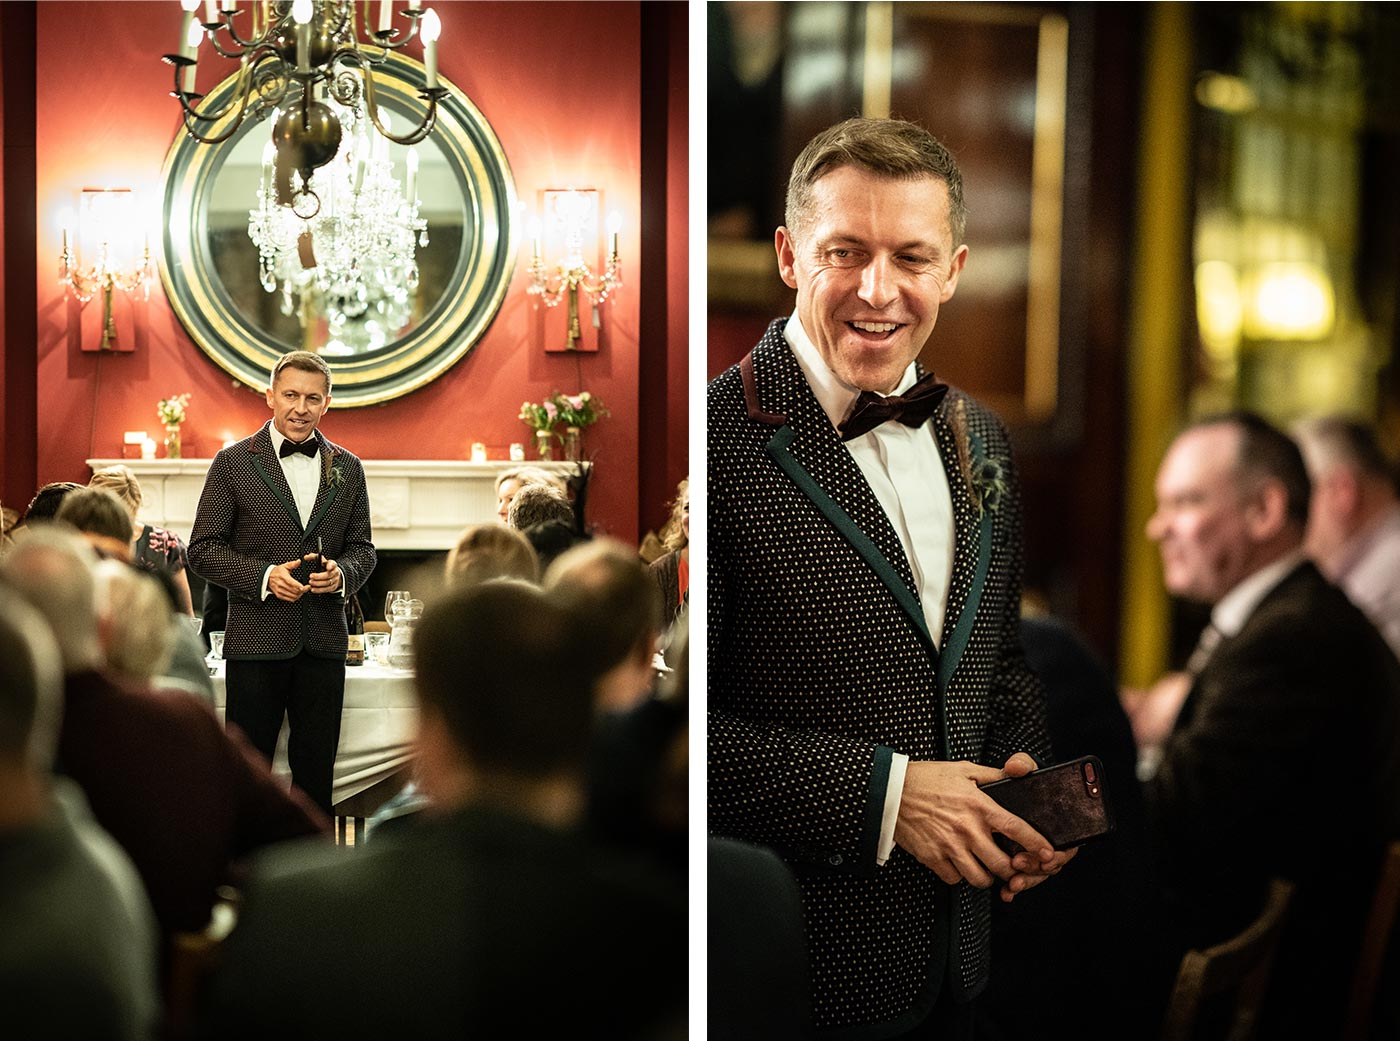 Good conducts his speech in front of a large round antique mirror atWedding guests gather for speeches upstairs at Brunswick House in London